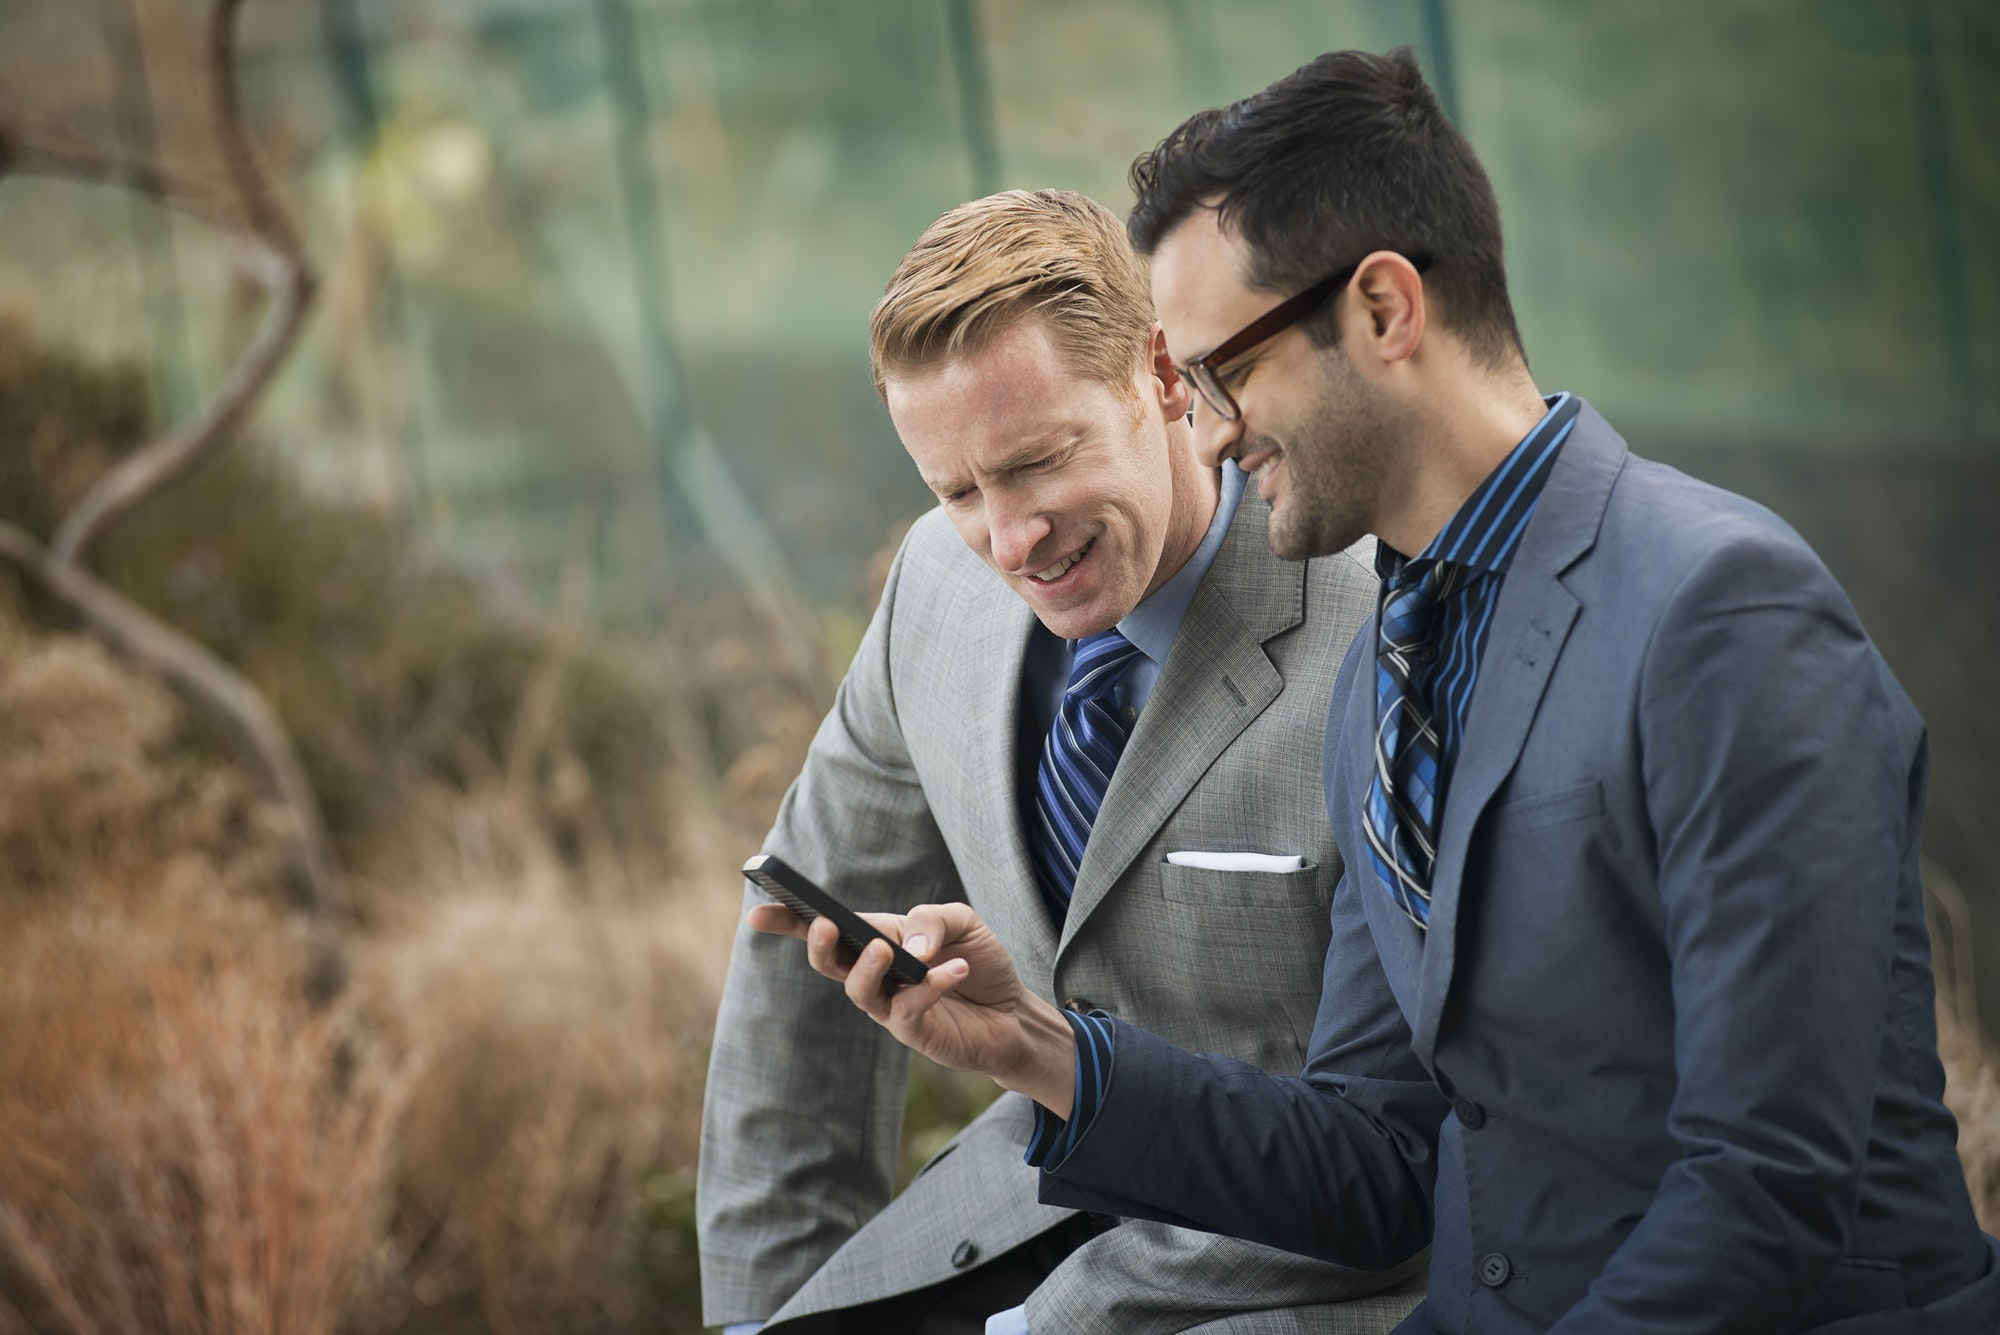 Two men standing side by side,looking at a cell phone screen or mobile phone.